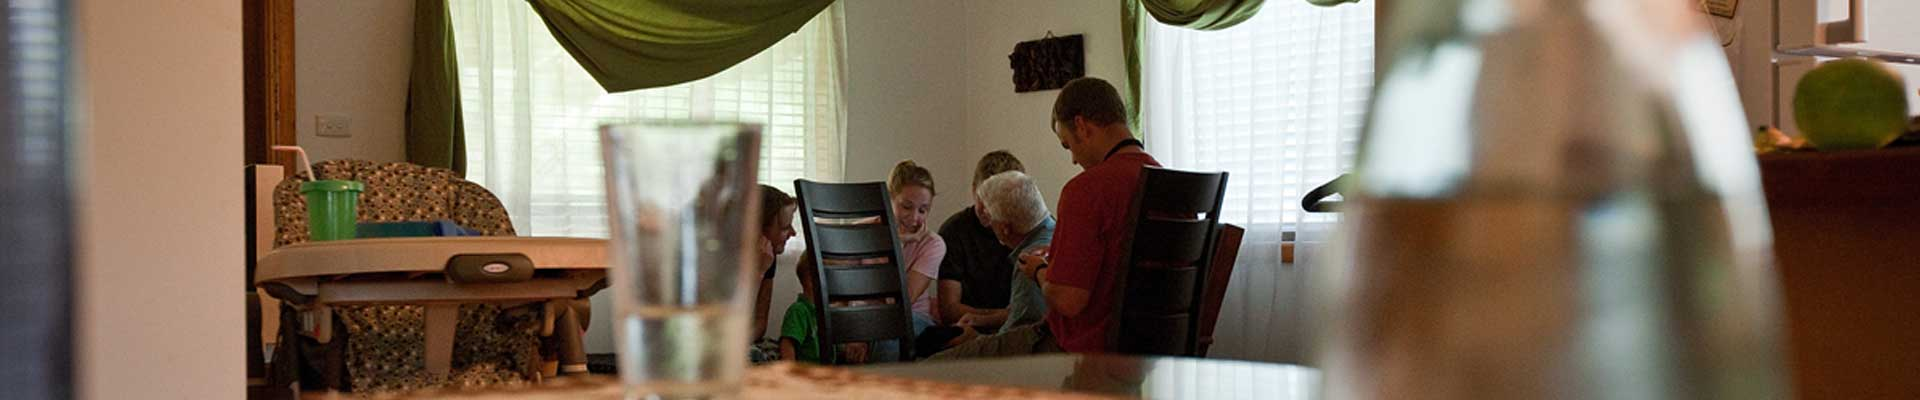 missionaries meeting in a house